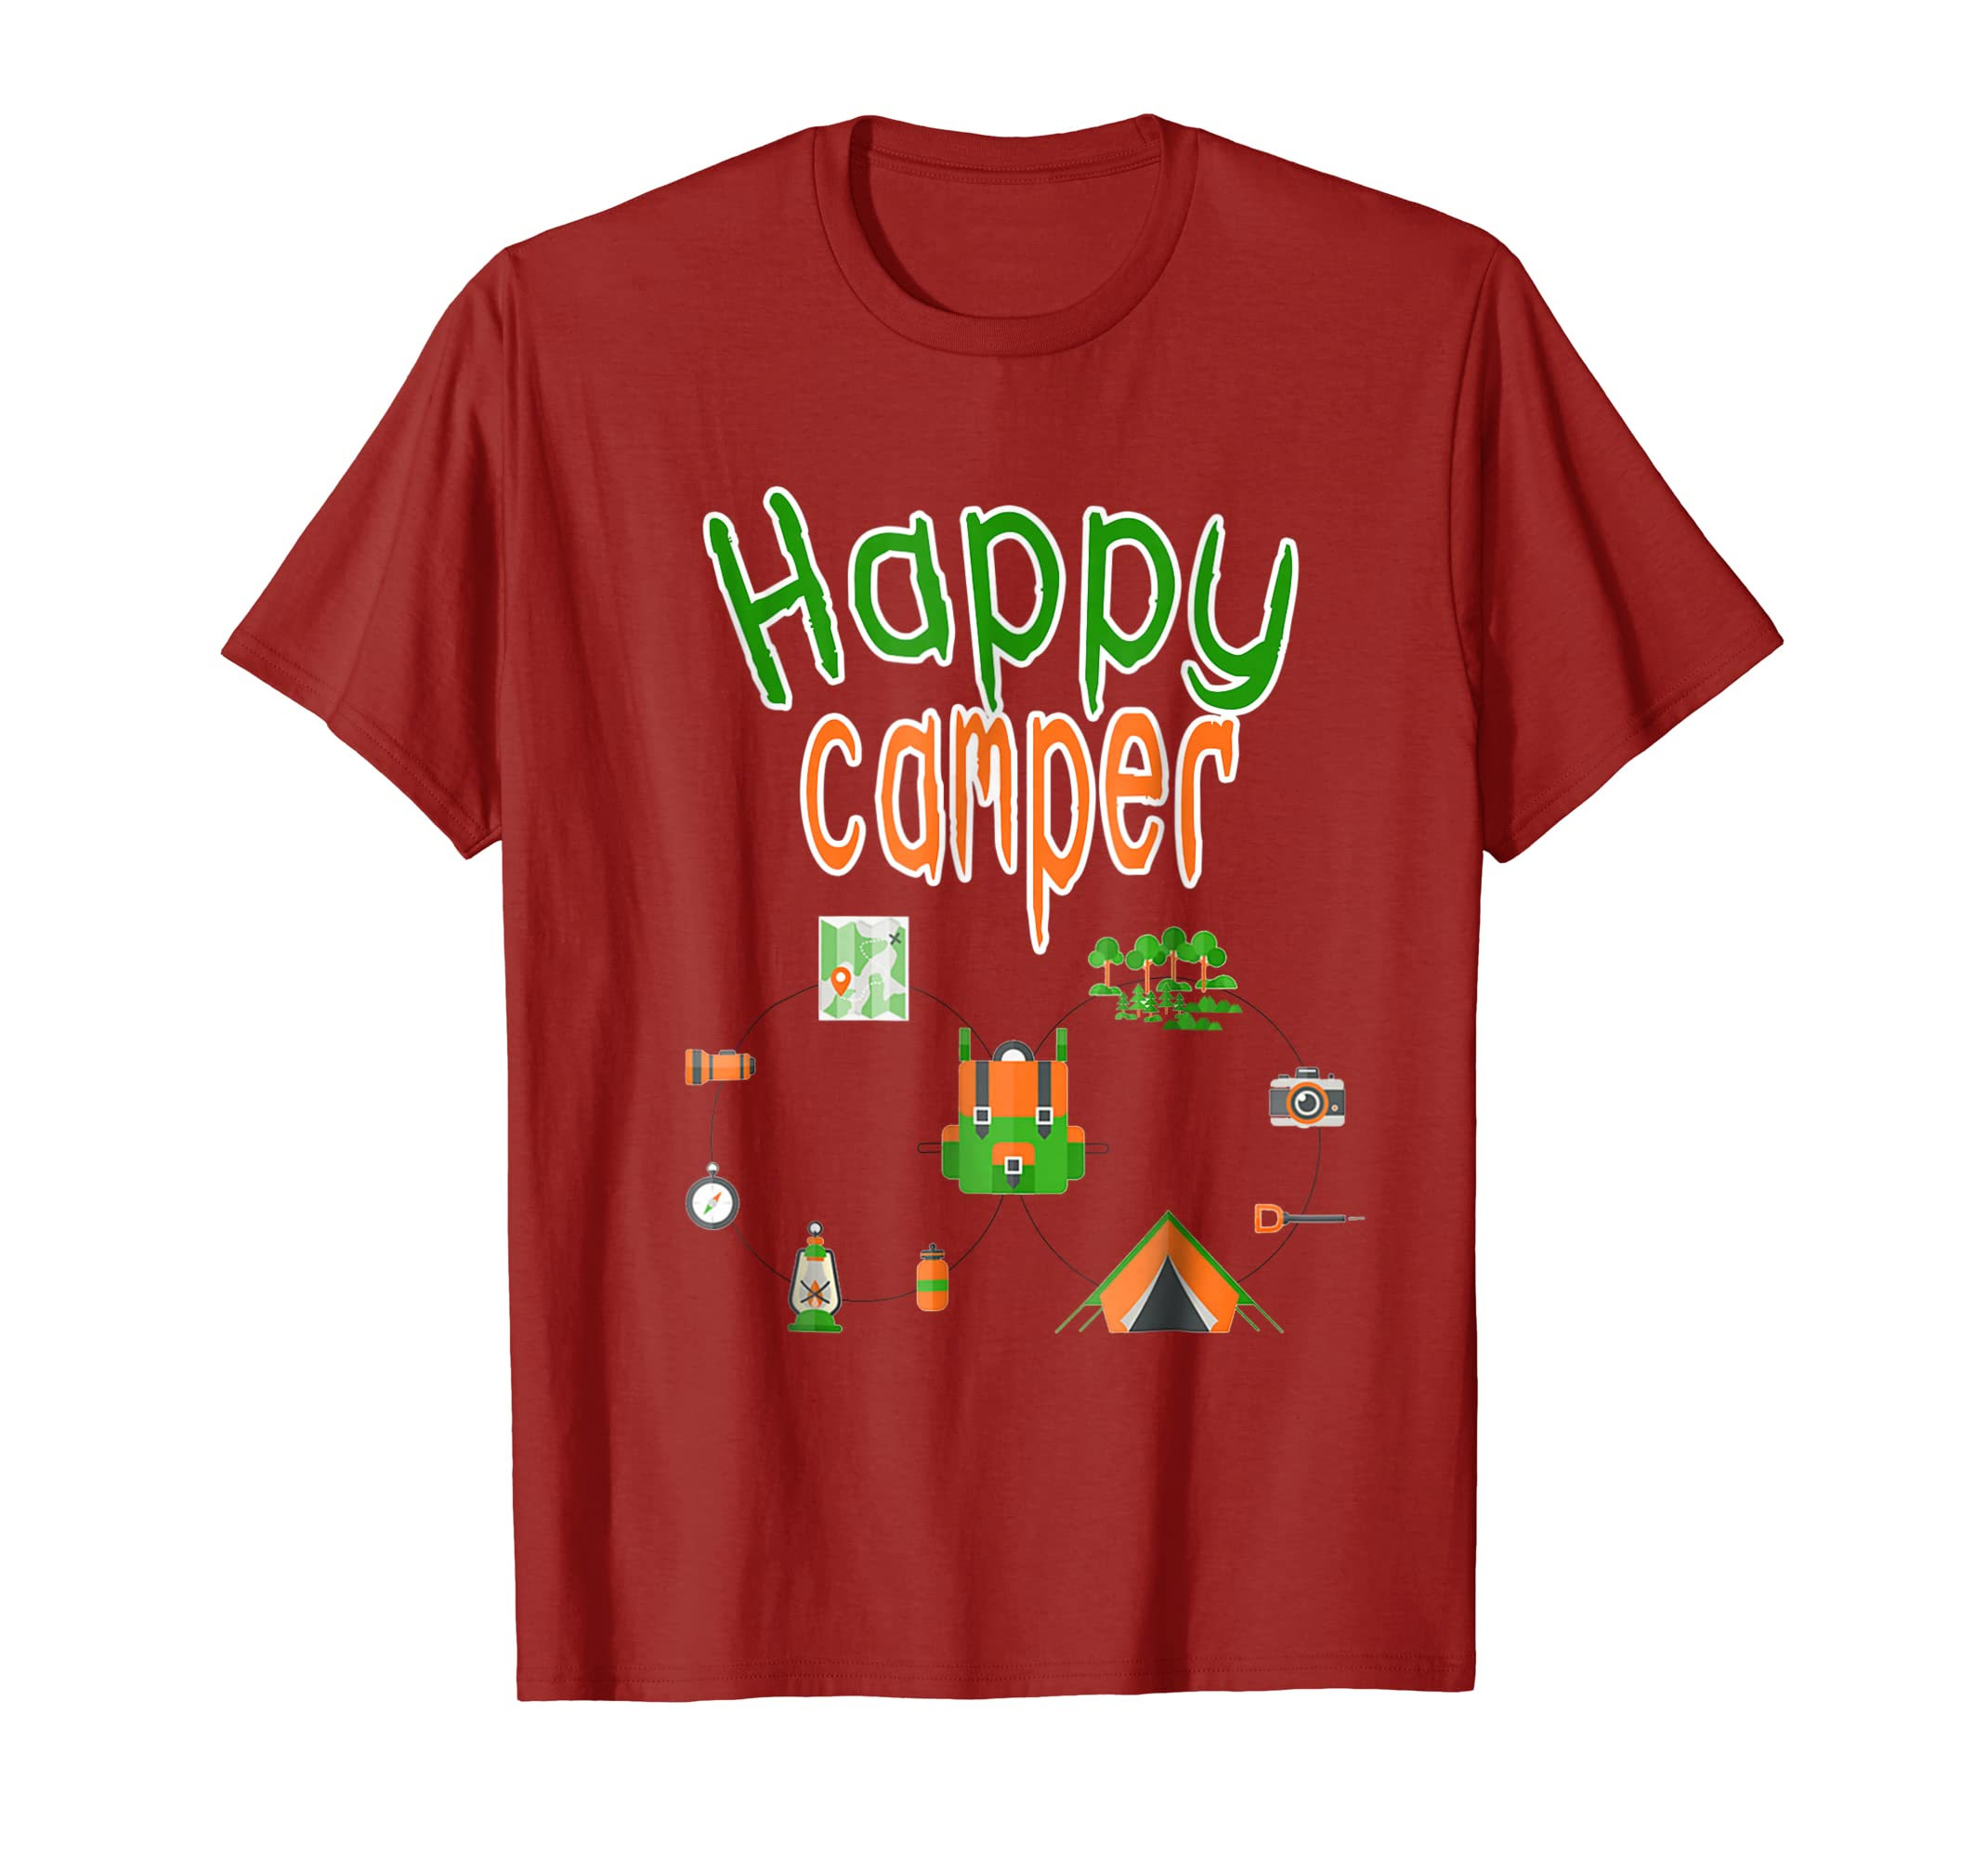 Happy Camper - Camping T-Shirt for Men, Women, and youth-mt